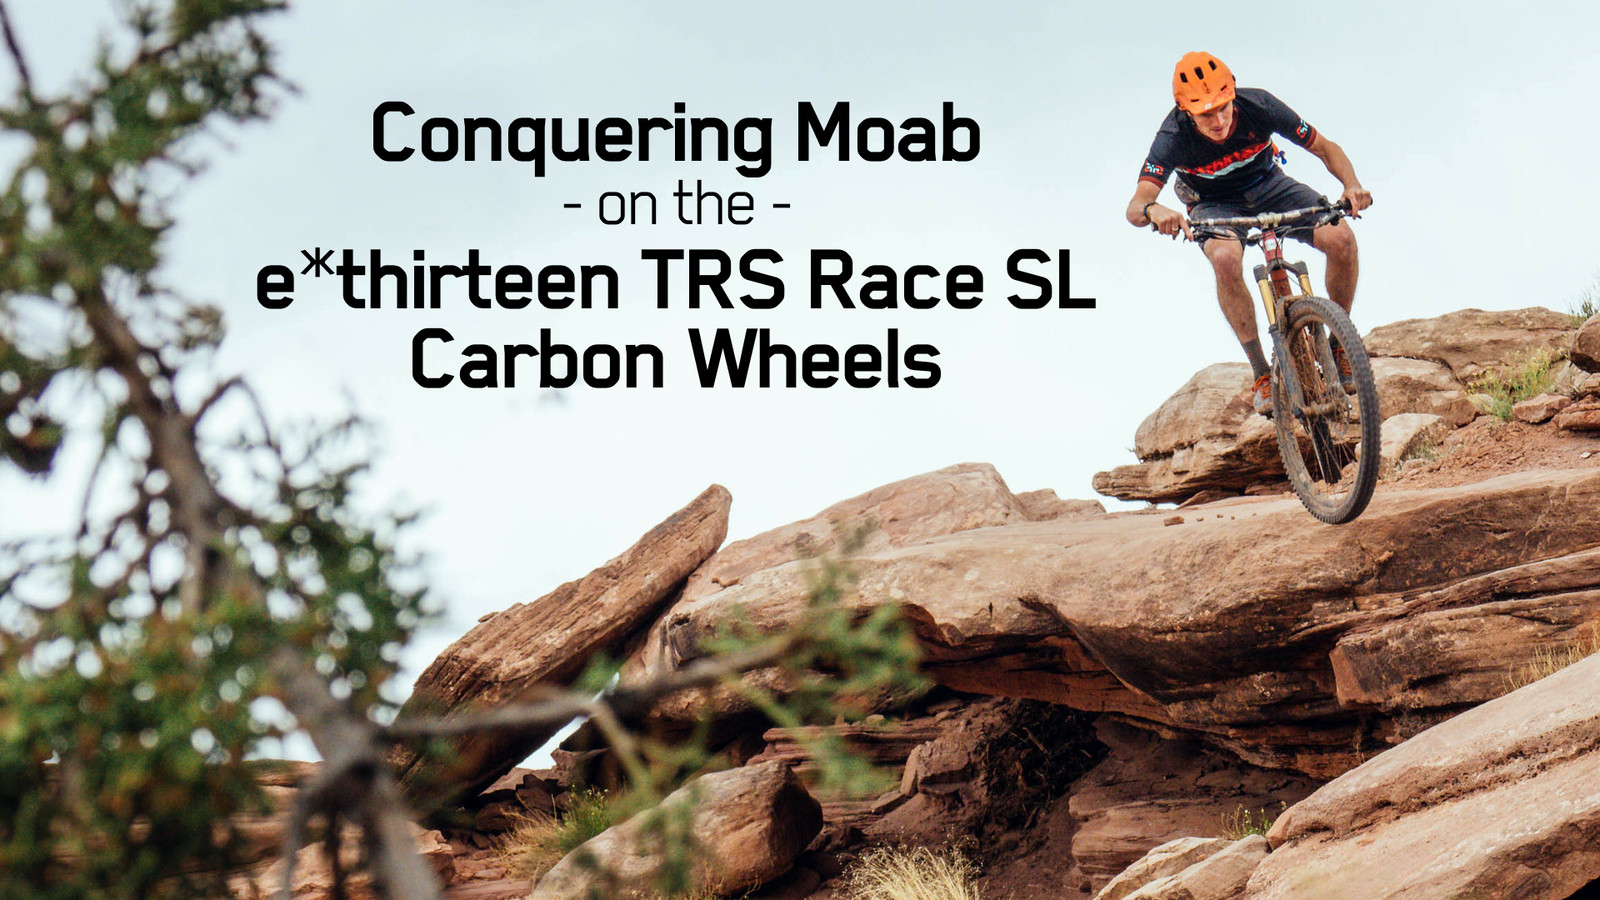 Conquering Moab on the All-New e*thirteen TRS Race SL Carbon Wheels